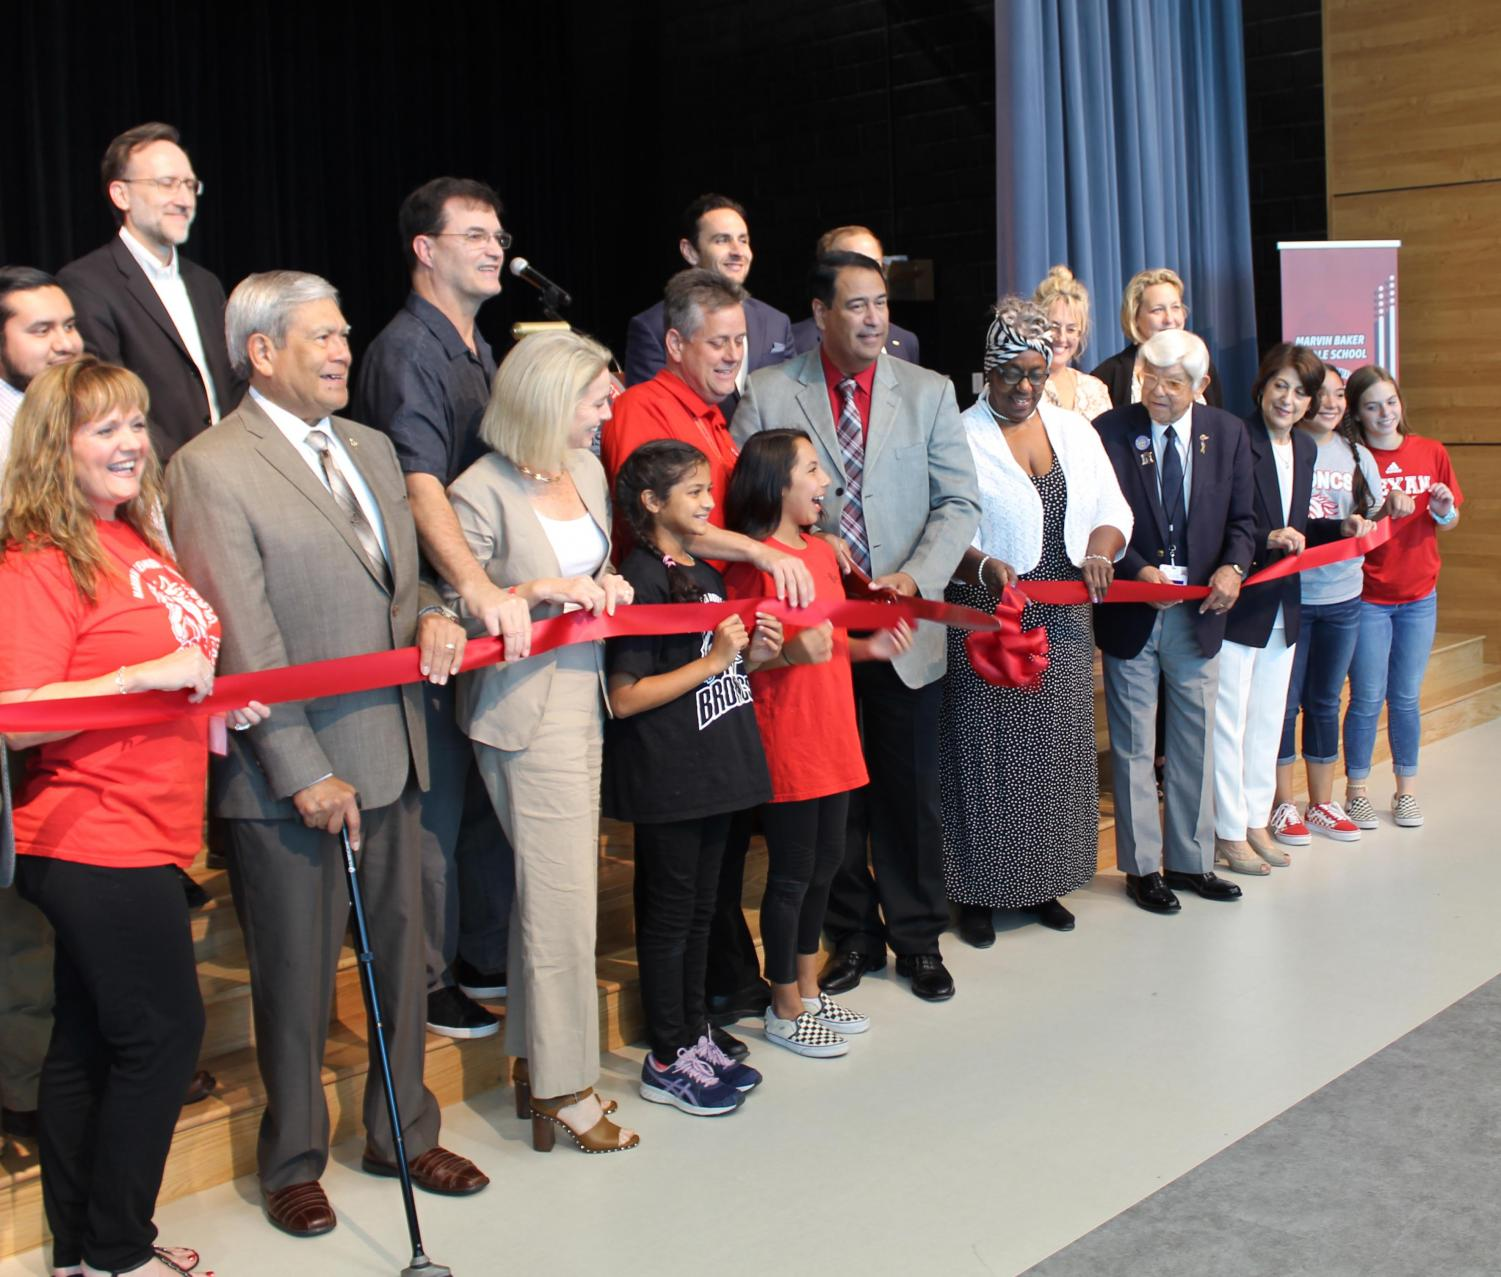 CCISD School Board members and other dignitaries participate in the ribbon-cutting for the new Baker Middle School building on October 10.